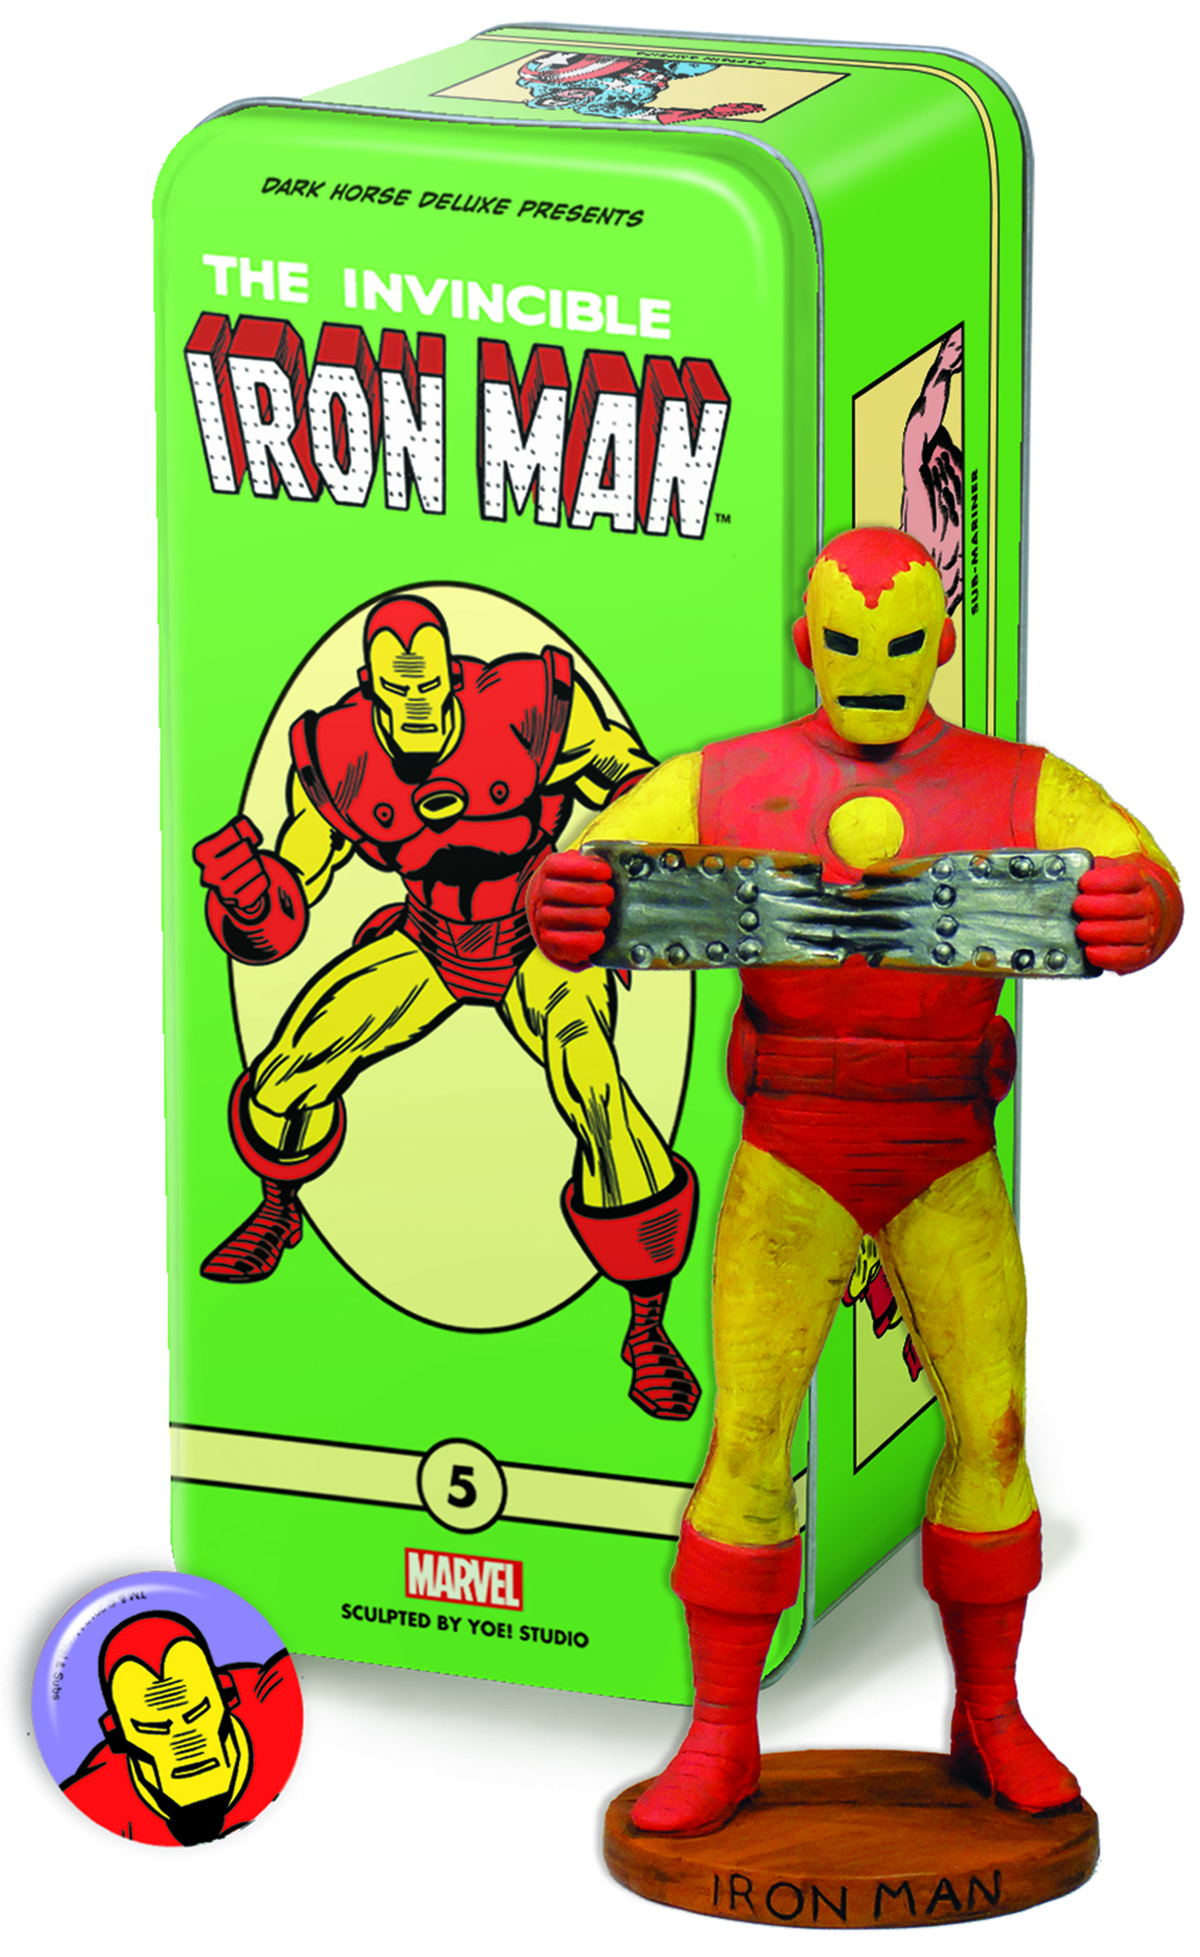 CLASSIC MARVEL CHARACTERS SERIES 2 #5 IRON MAN